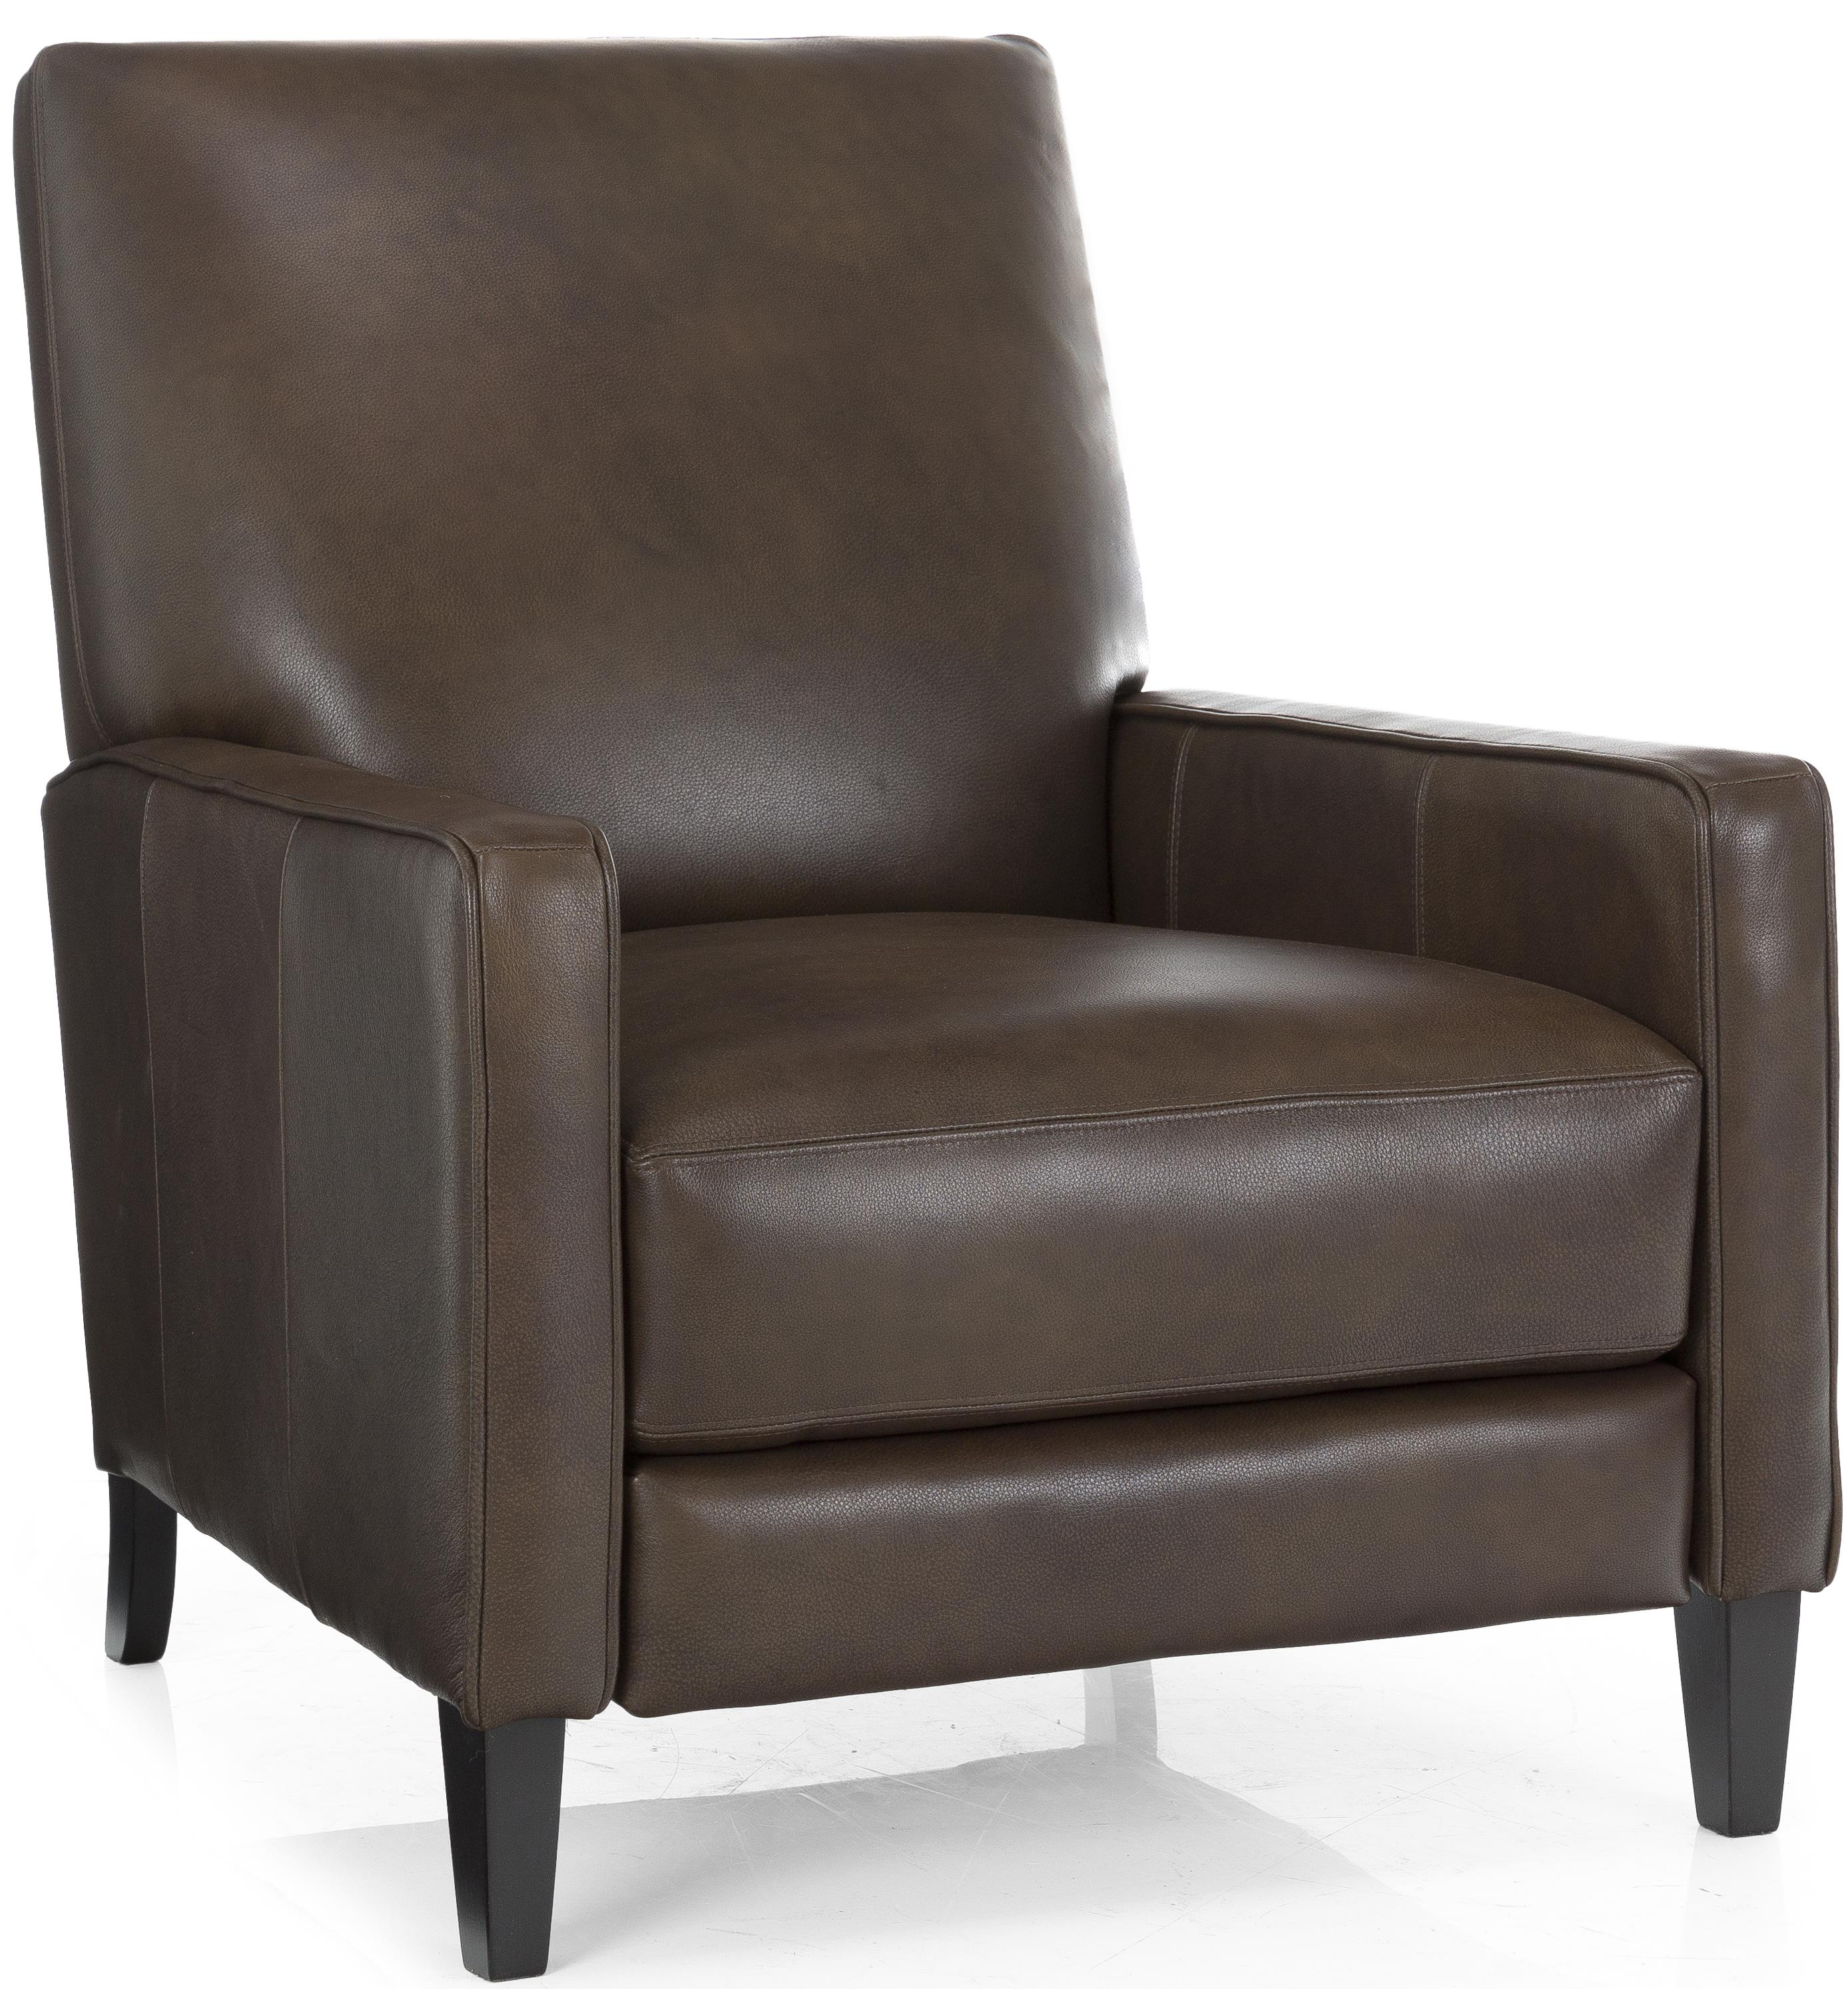 7312 Power Reclining Chair by Decor-Rest at Johnny Janosik